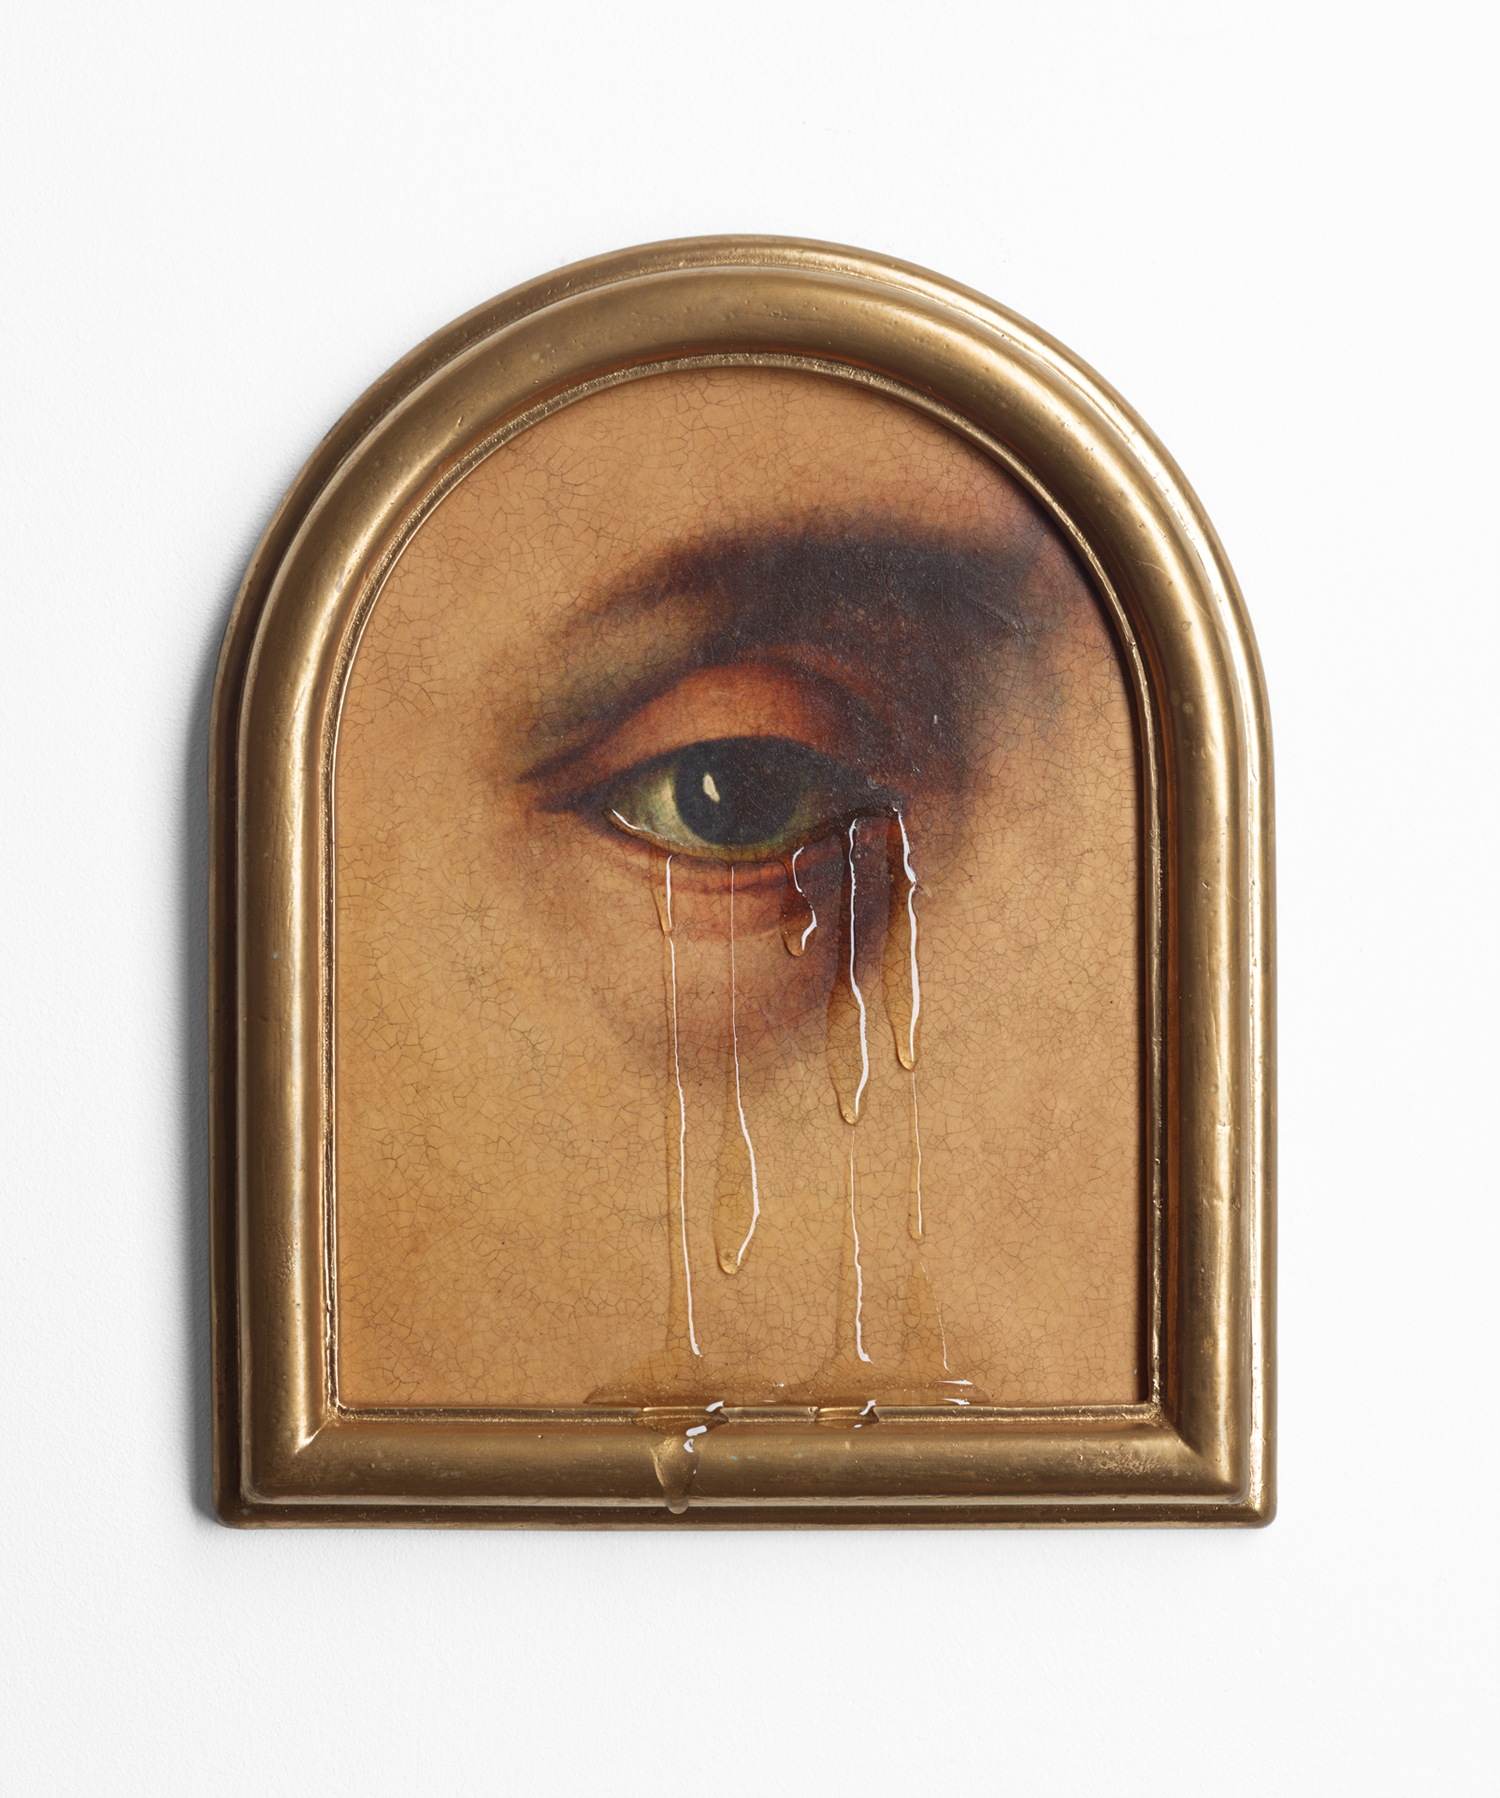 Eye with Tears